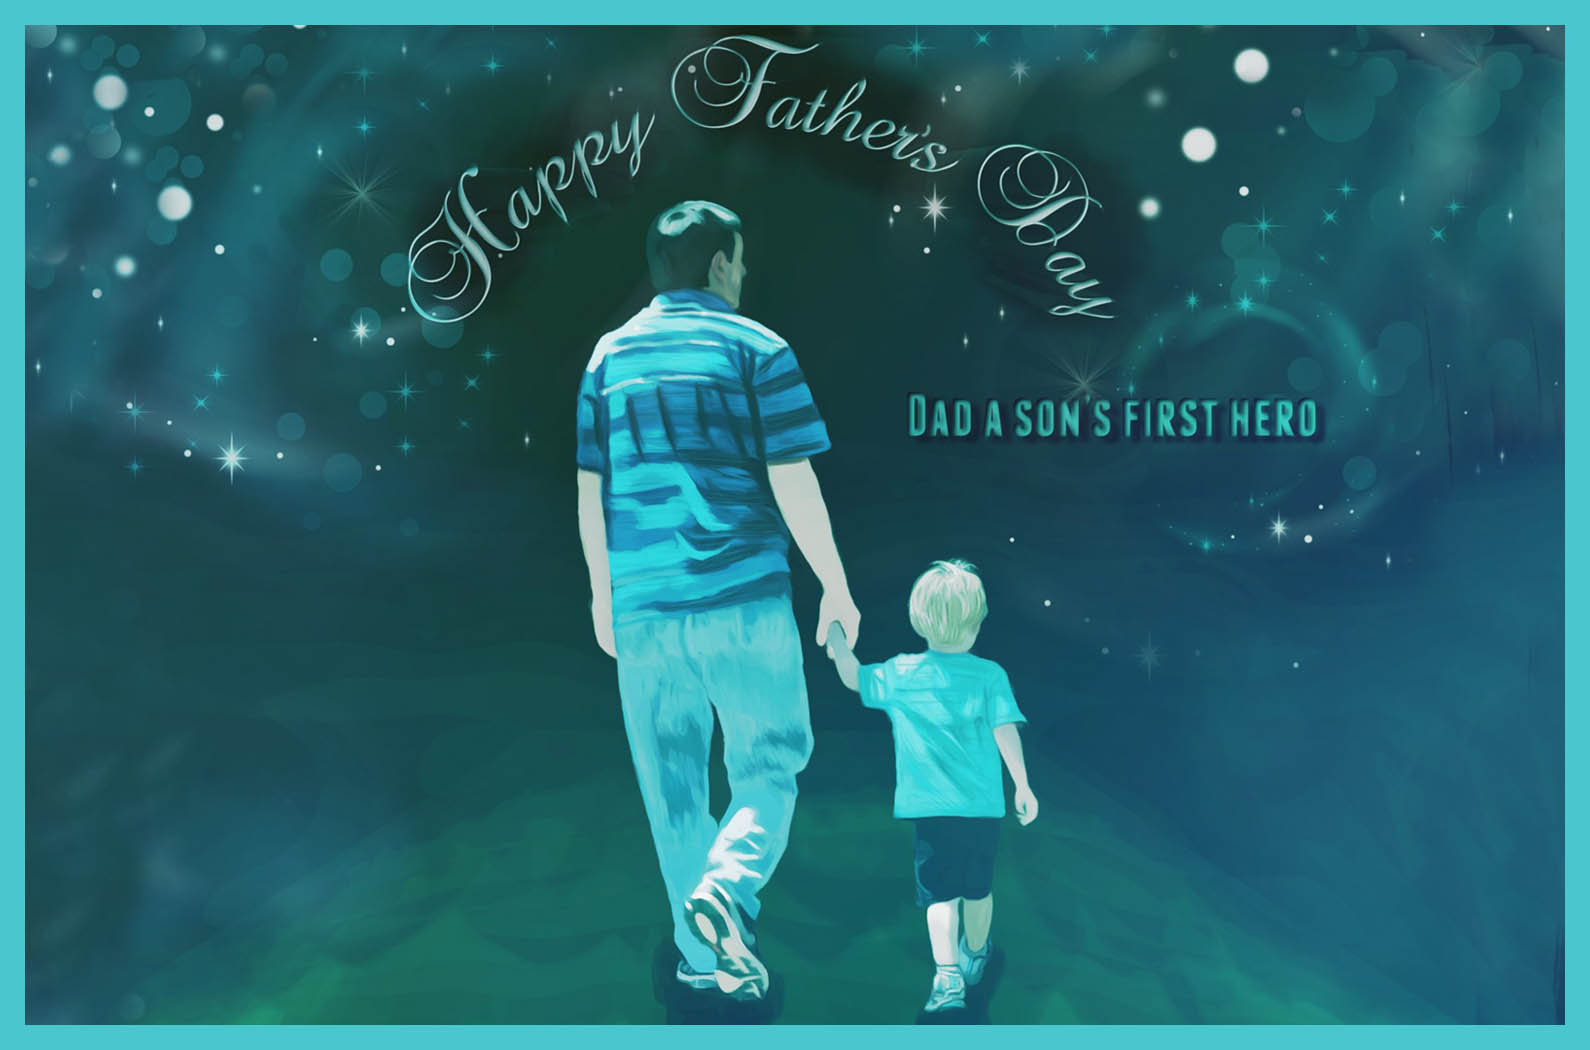 father and son hand in hand in universe